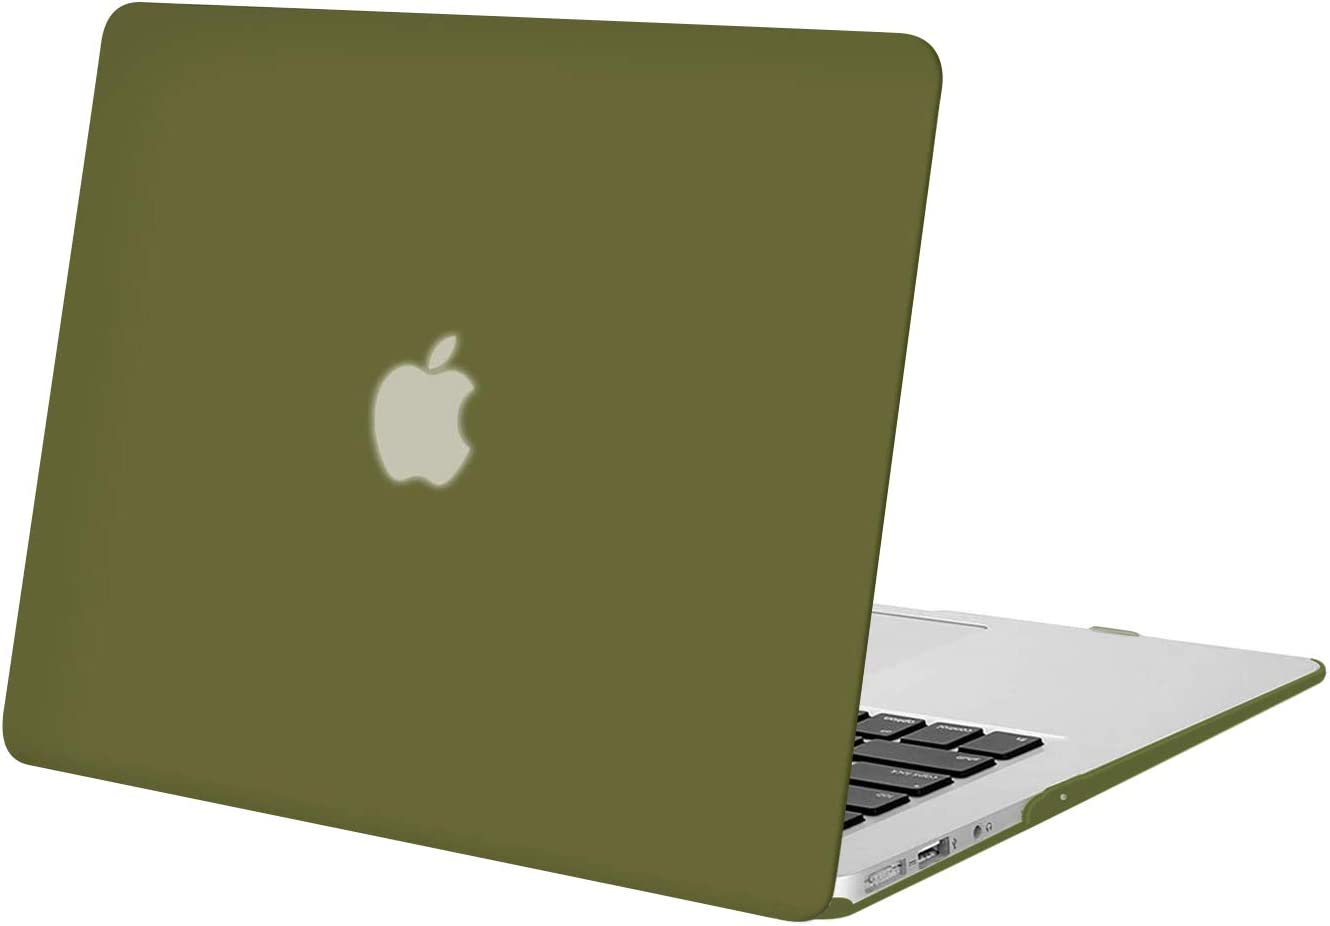 MOSISO MacBook Air 13 inch Case (Models: A1369 & A1466, Older Version 2010-2017 Release), Plastic Hard Shell Case Cover Only Compatible with MacBook Air 13 inch, Capulet Olive